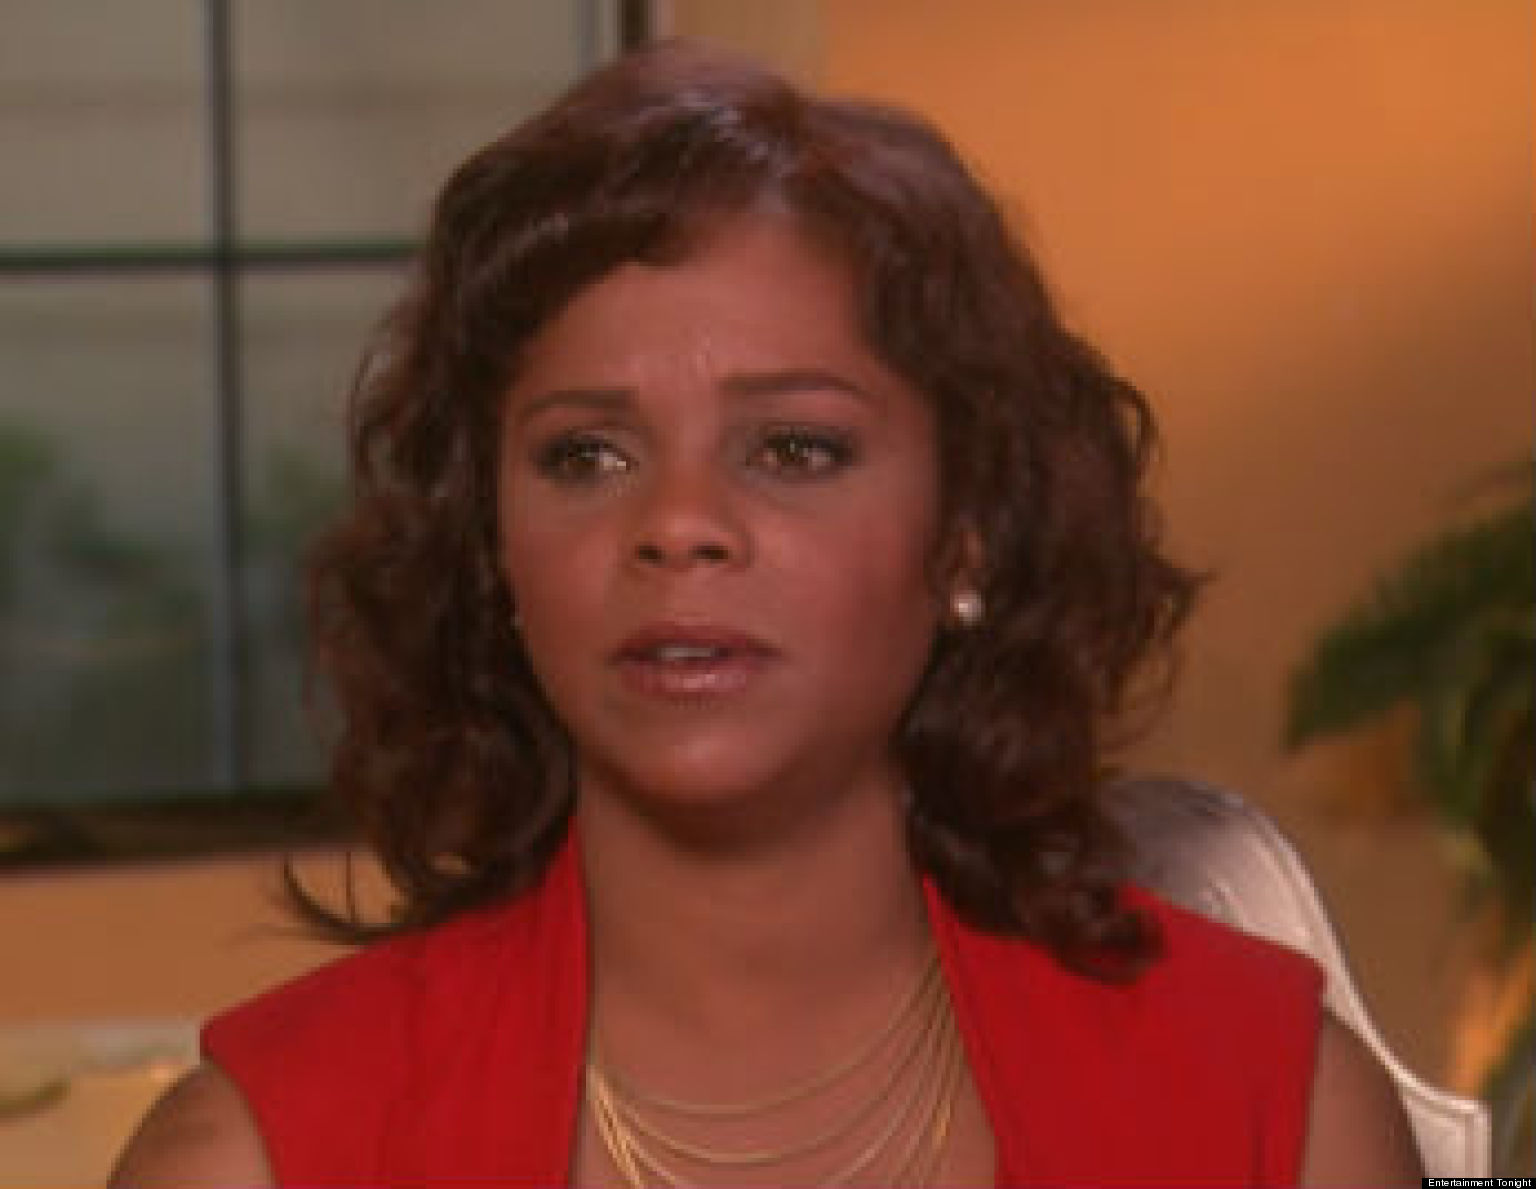 Lark Voorhies, Bipolar Disorder: 'Saved By The Bell' Actress ...